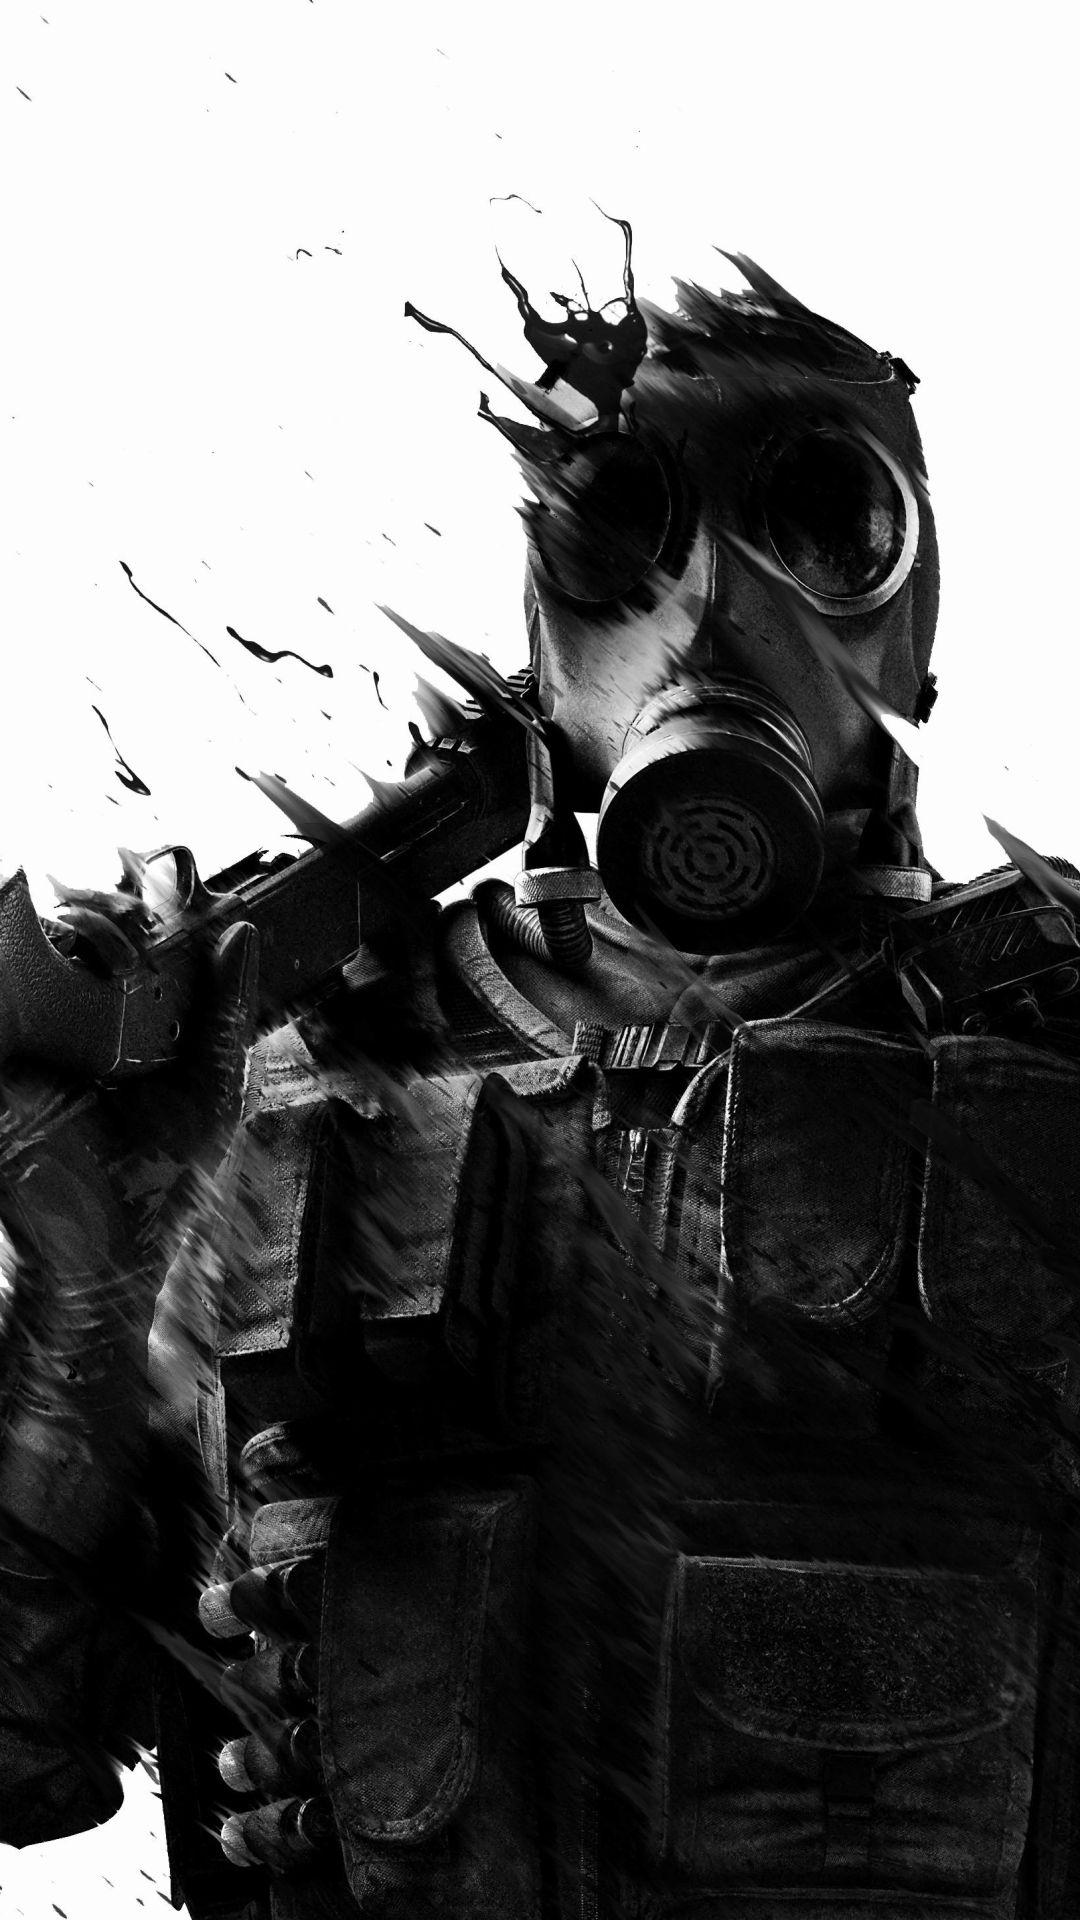 Rainbow 6 Siege Wallpapers Wallpaper Cave